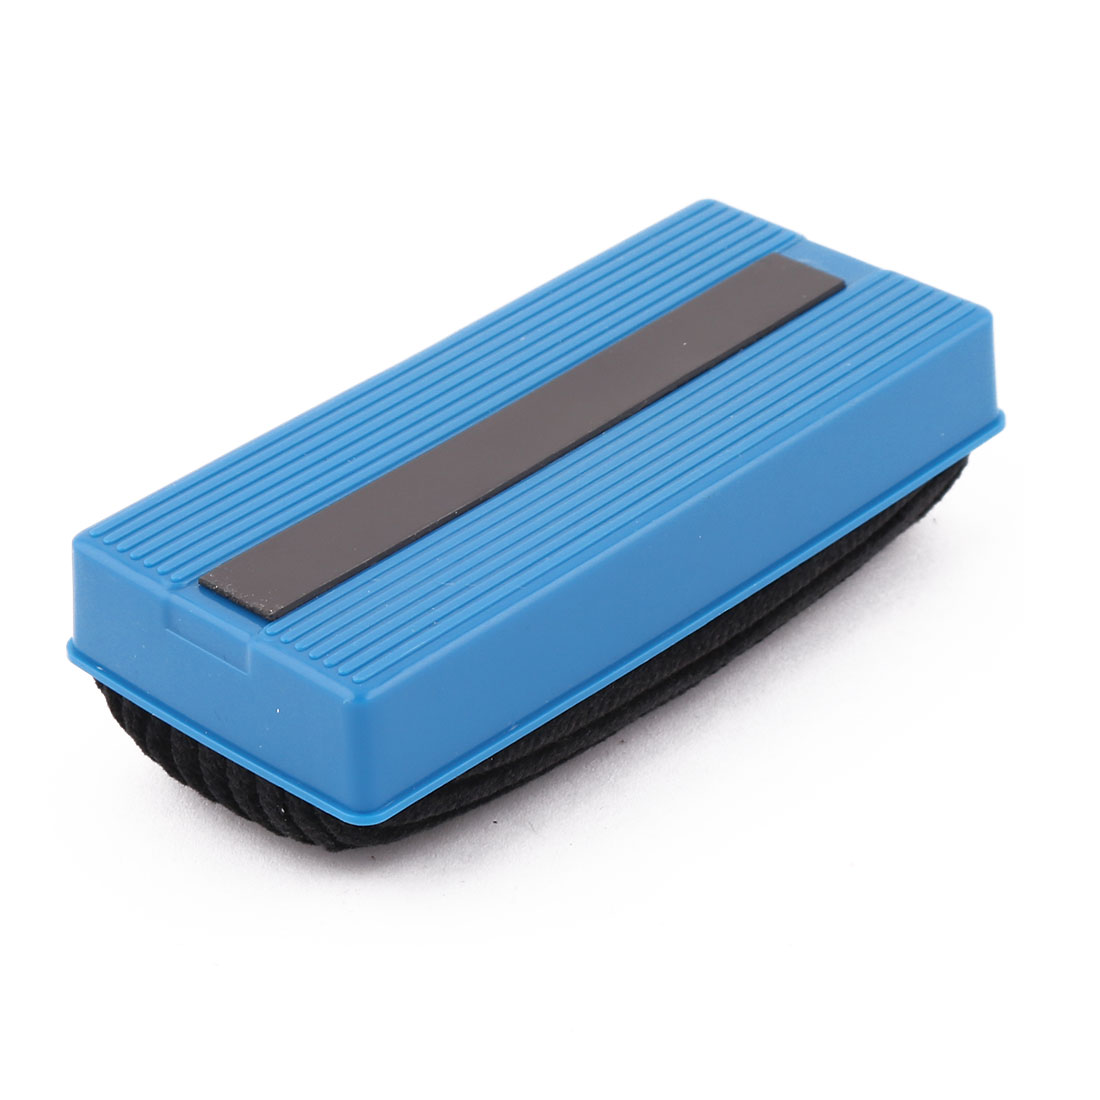 School Office Plastic Shell Rectangle Design Blackboard Whiteboard Cleaner Eraser Blue